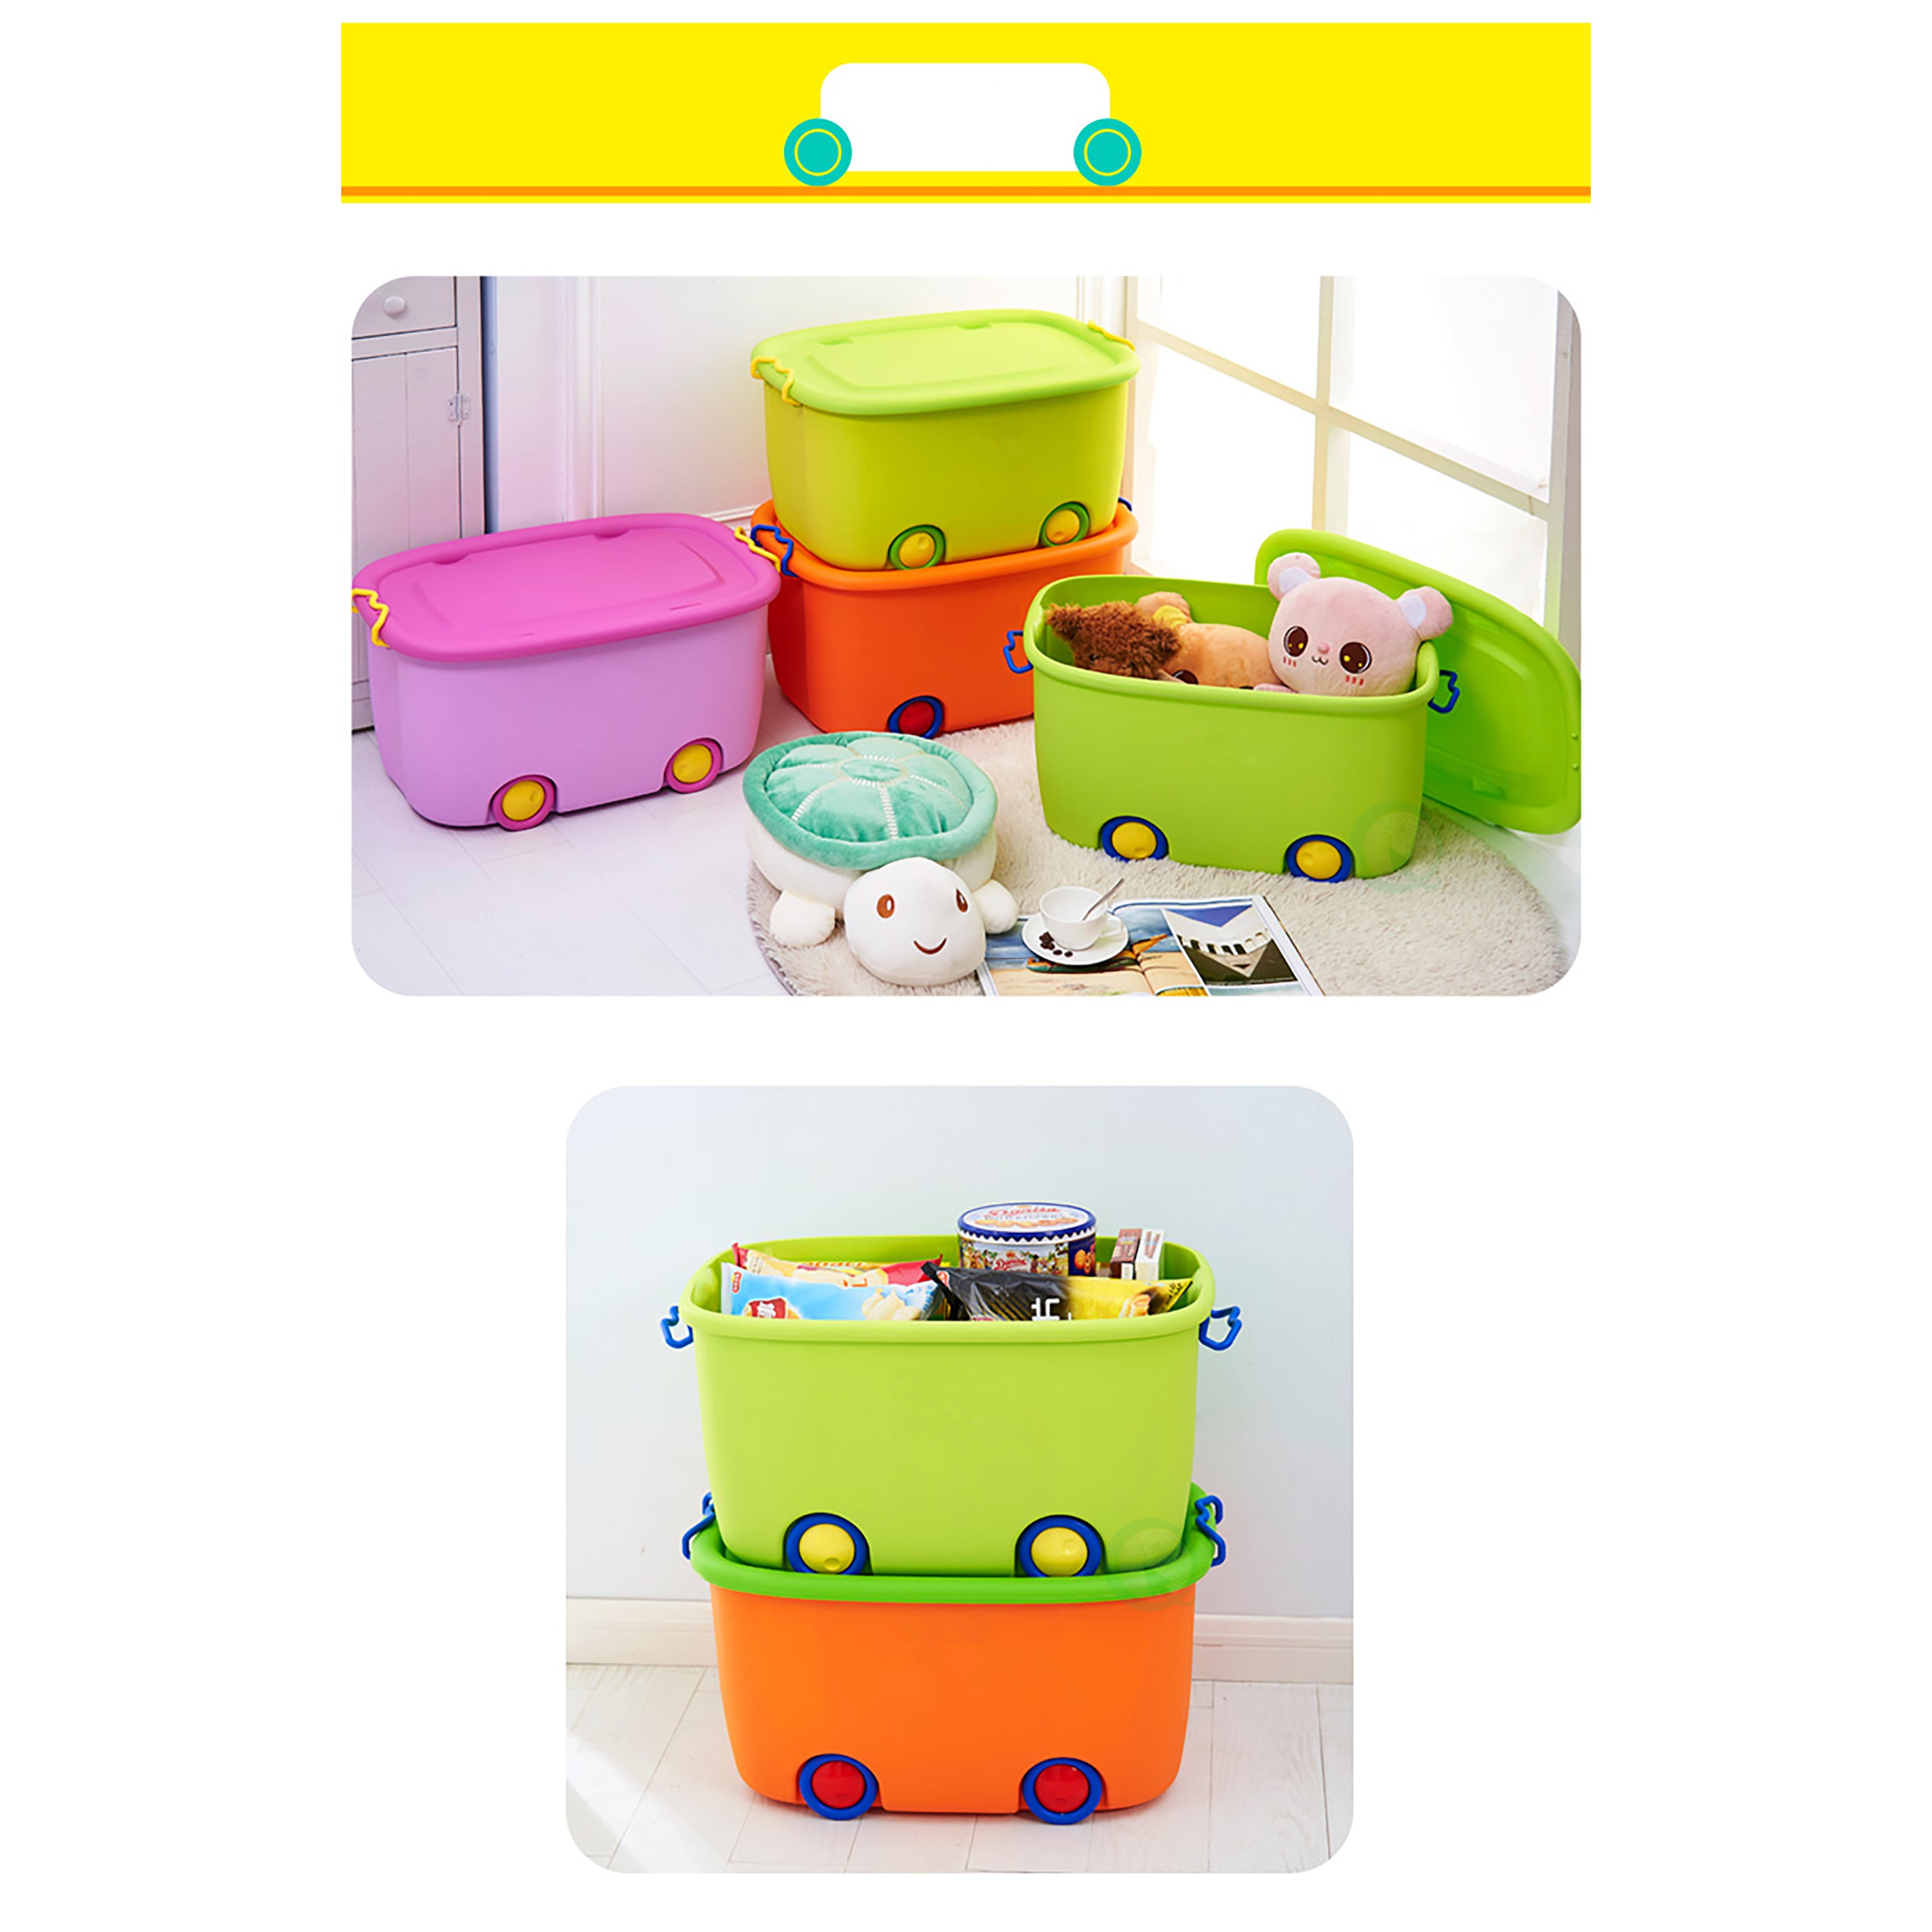 Ordinaire Shop Stackable Toy Storage Box With Wheels   Free Shipping Today    Overstock.com   14160391